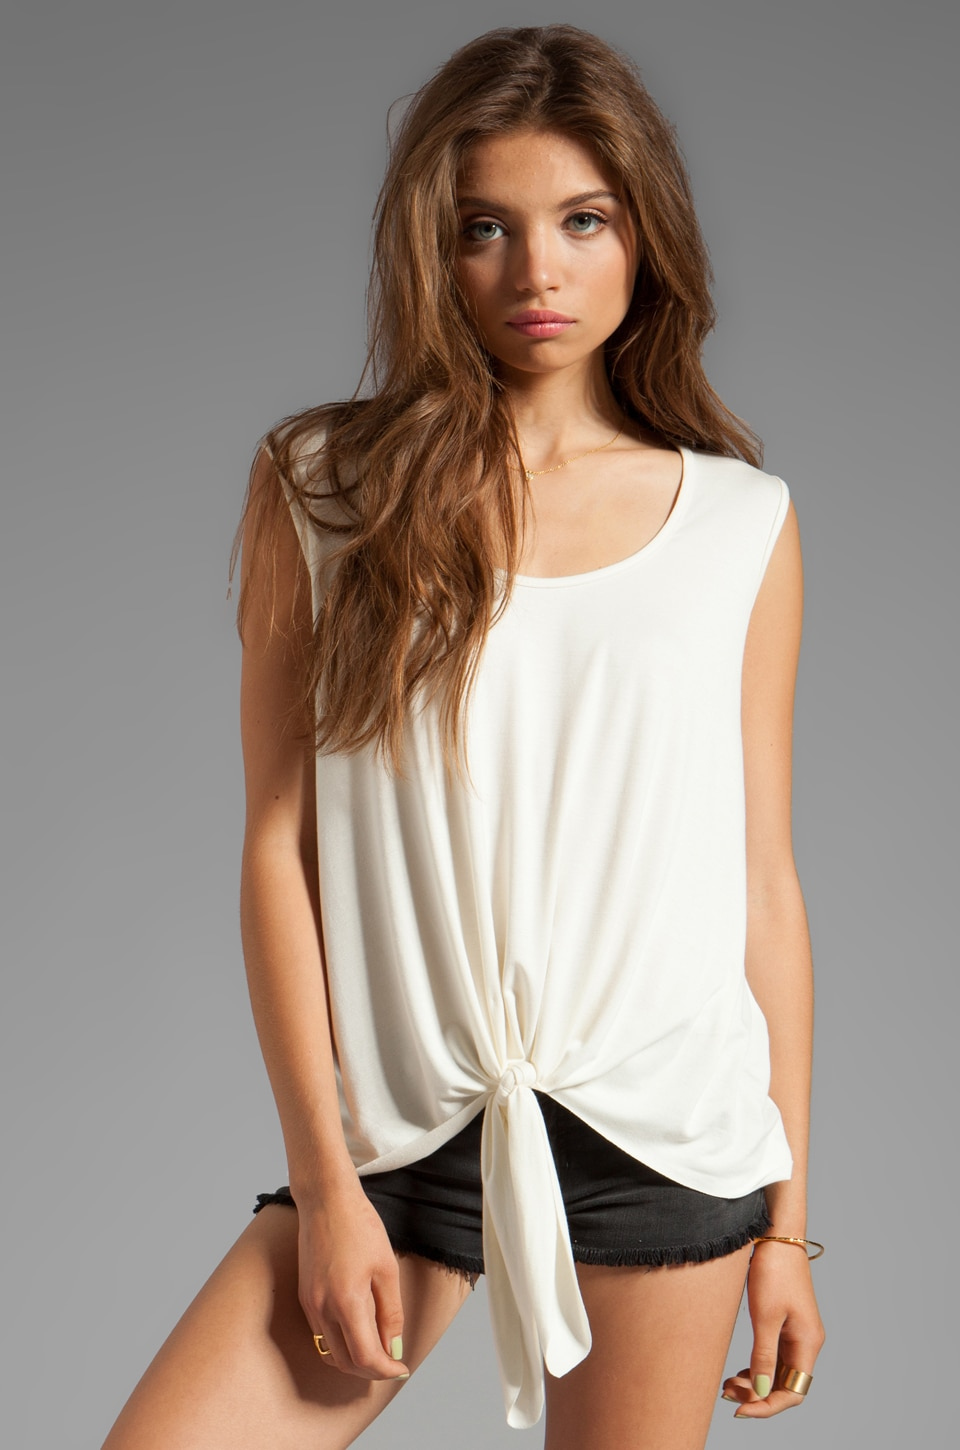 Saint Grace Peri Knot Tank in Cream